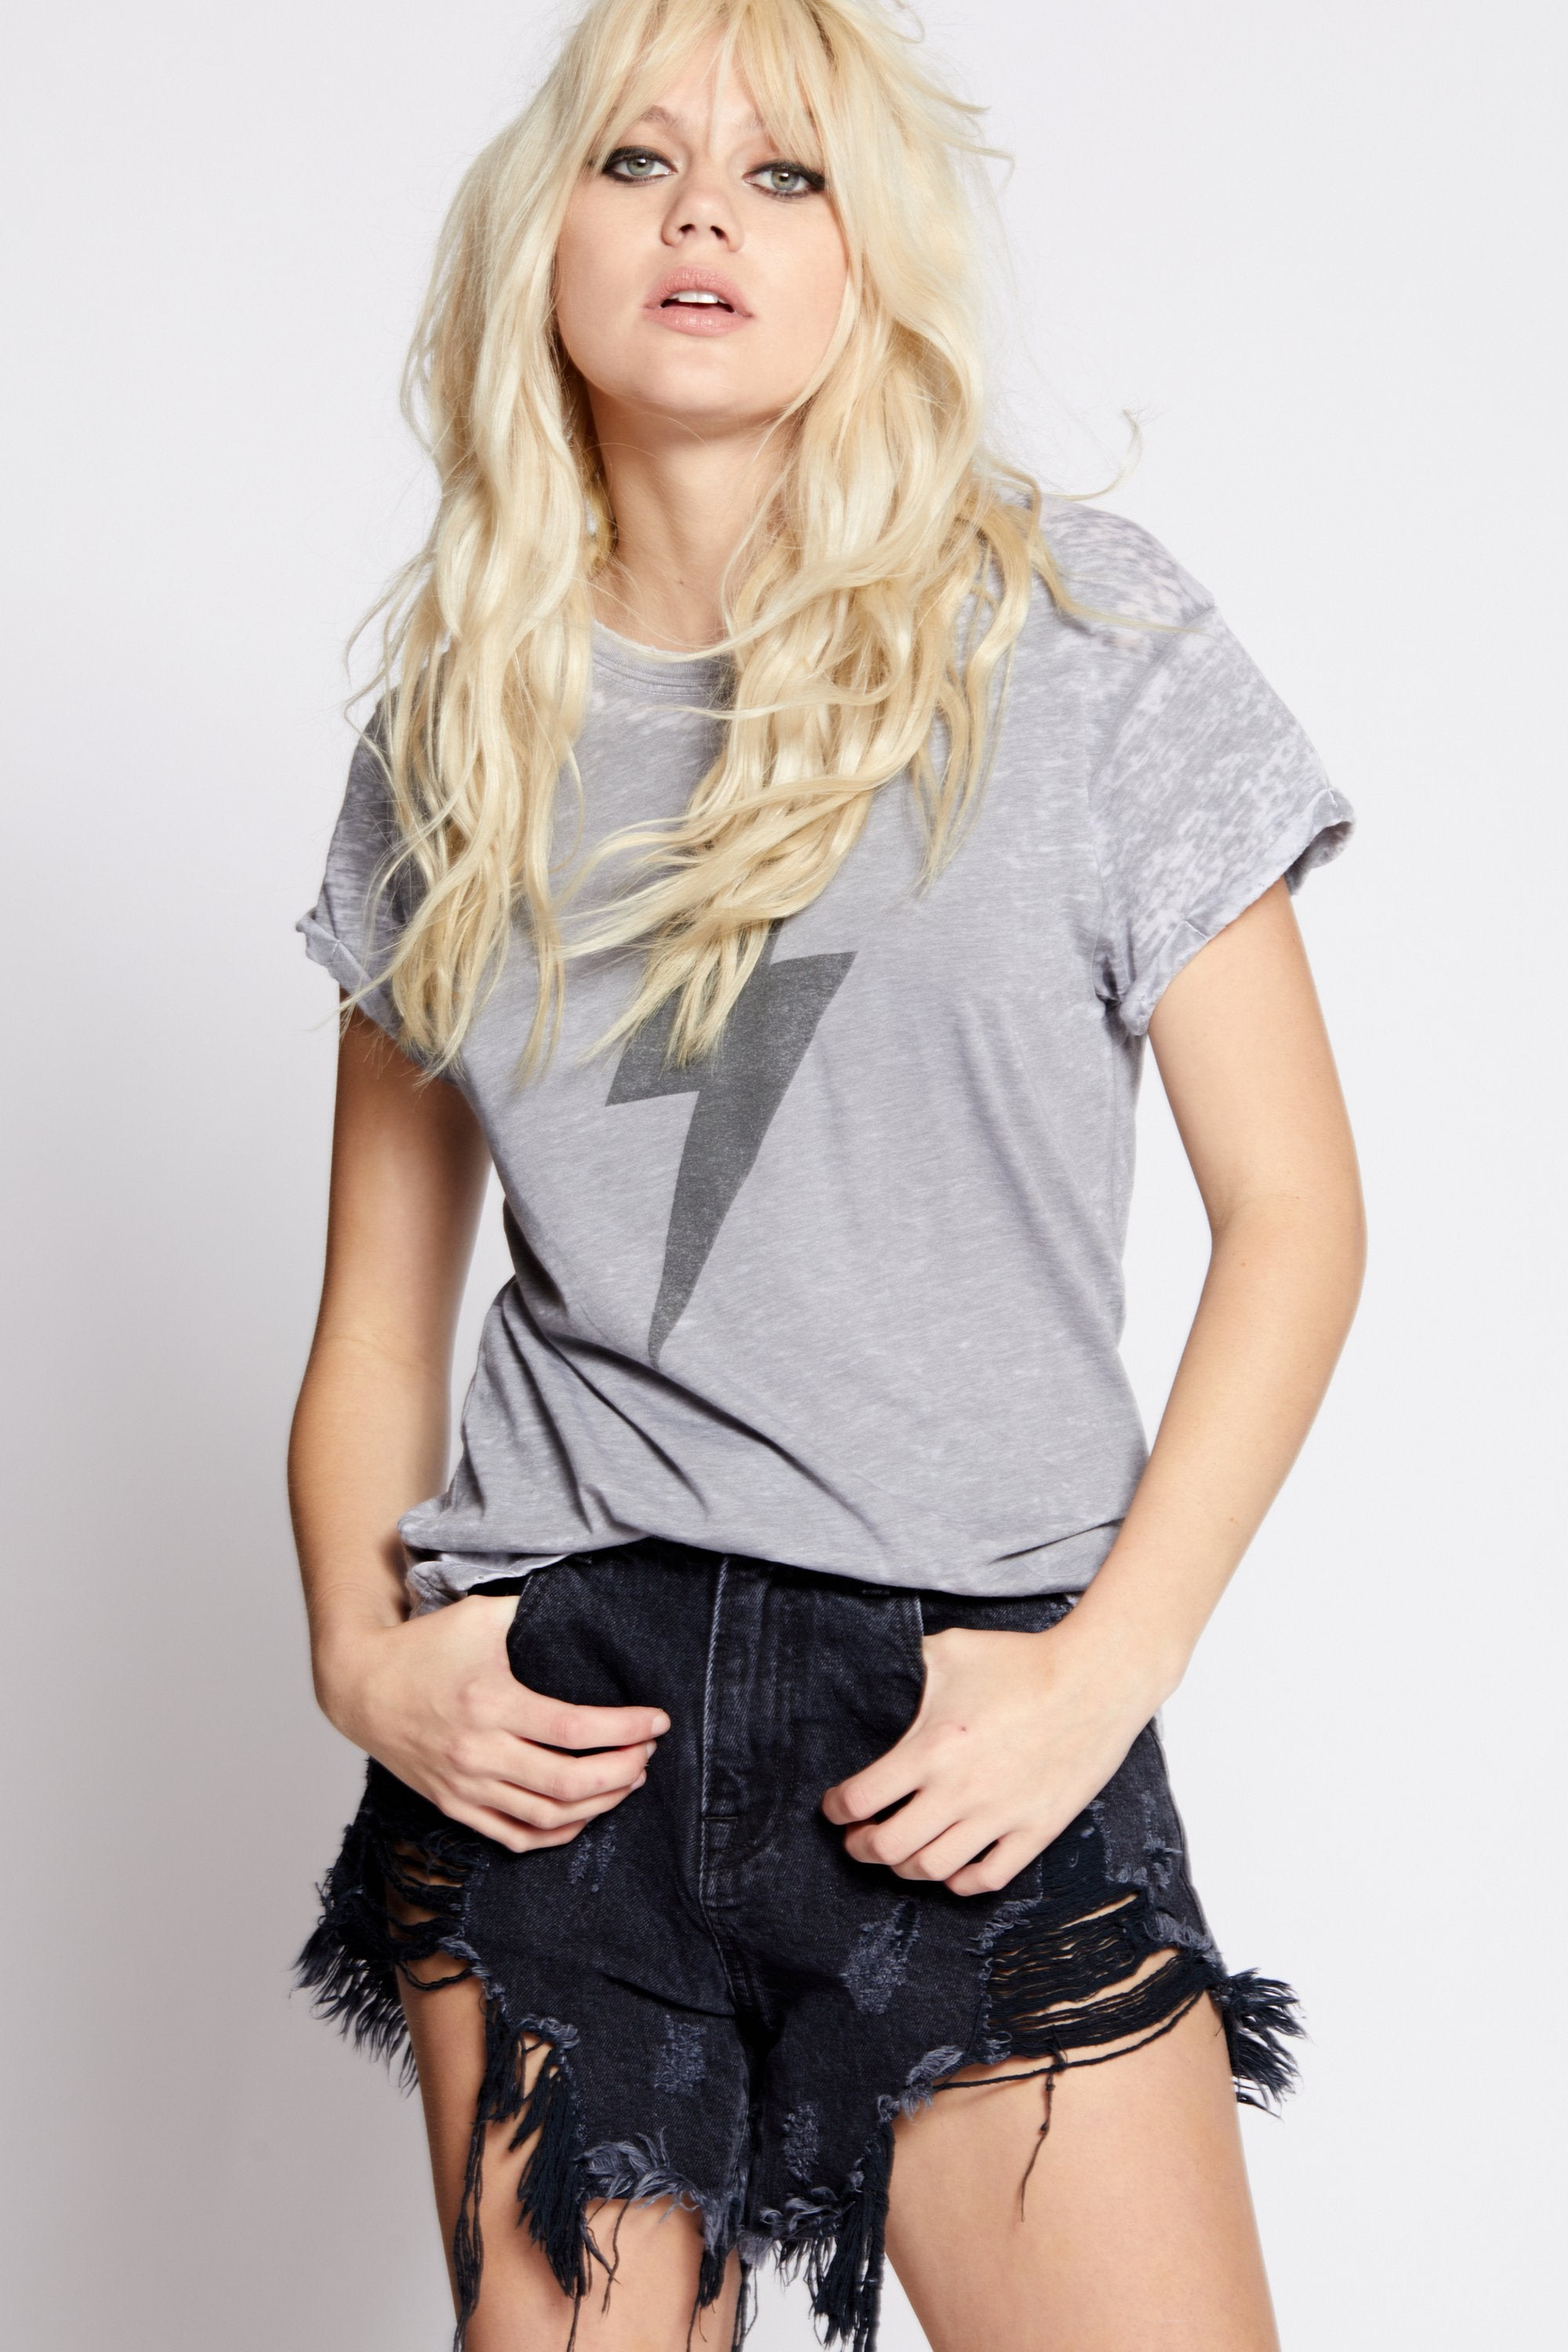 ACDC Thunderbolt Distressed Burnout Tee